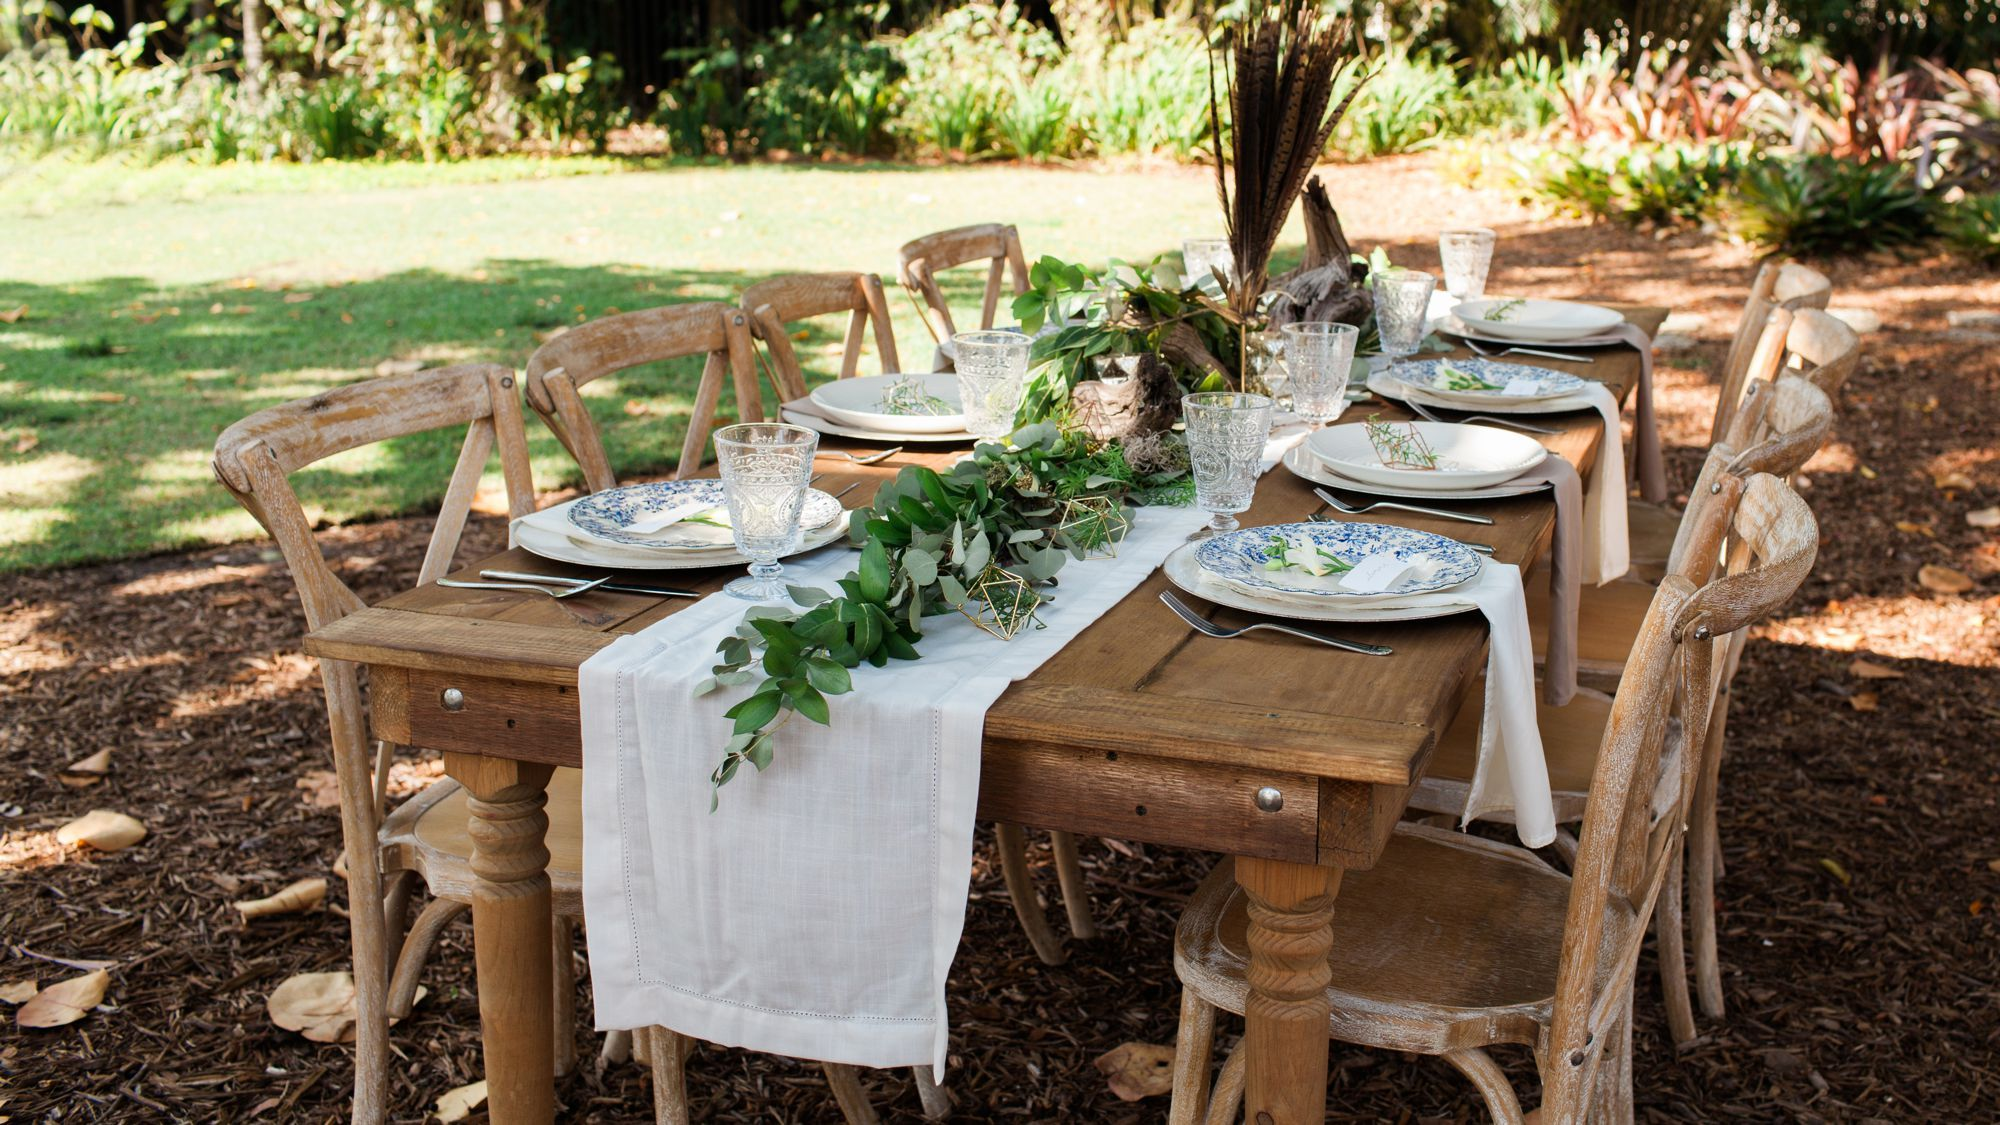 Our beautiful table setting for a boho/vintage wedding photo shoot